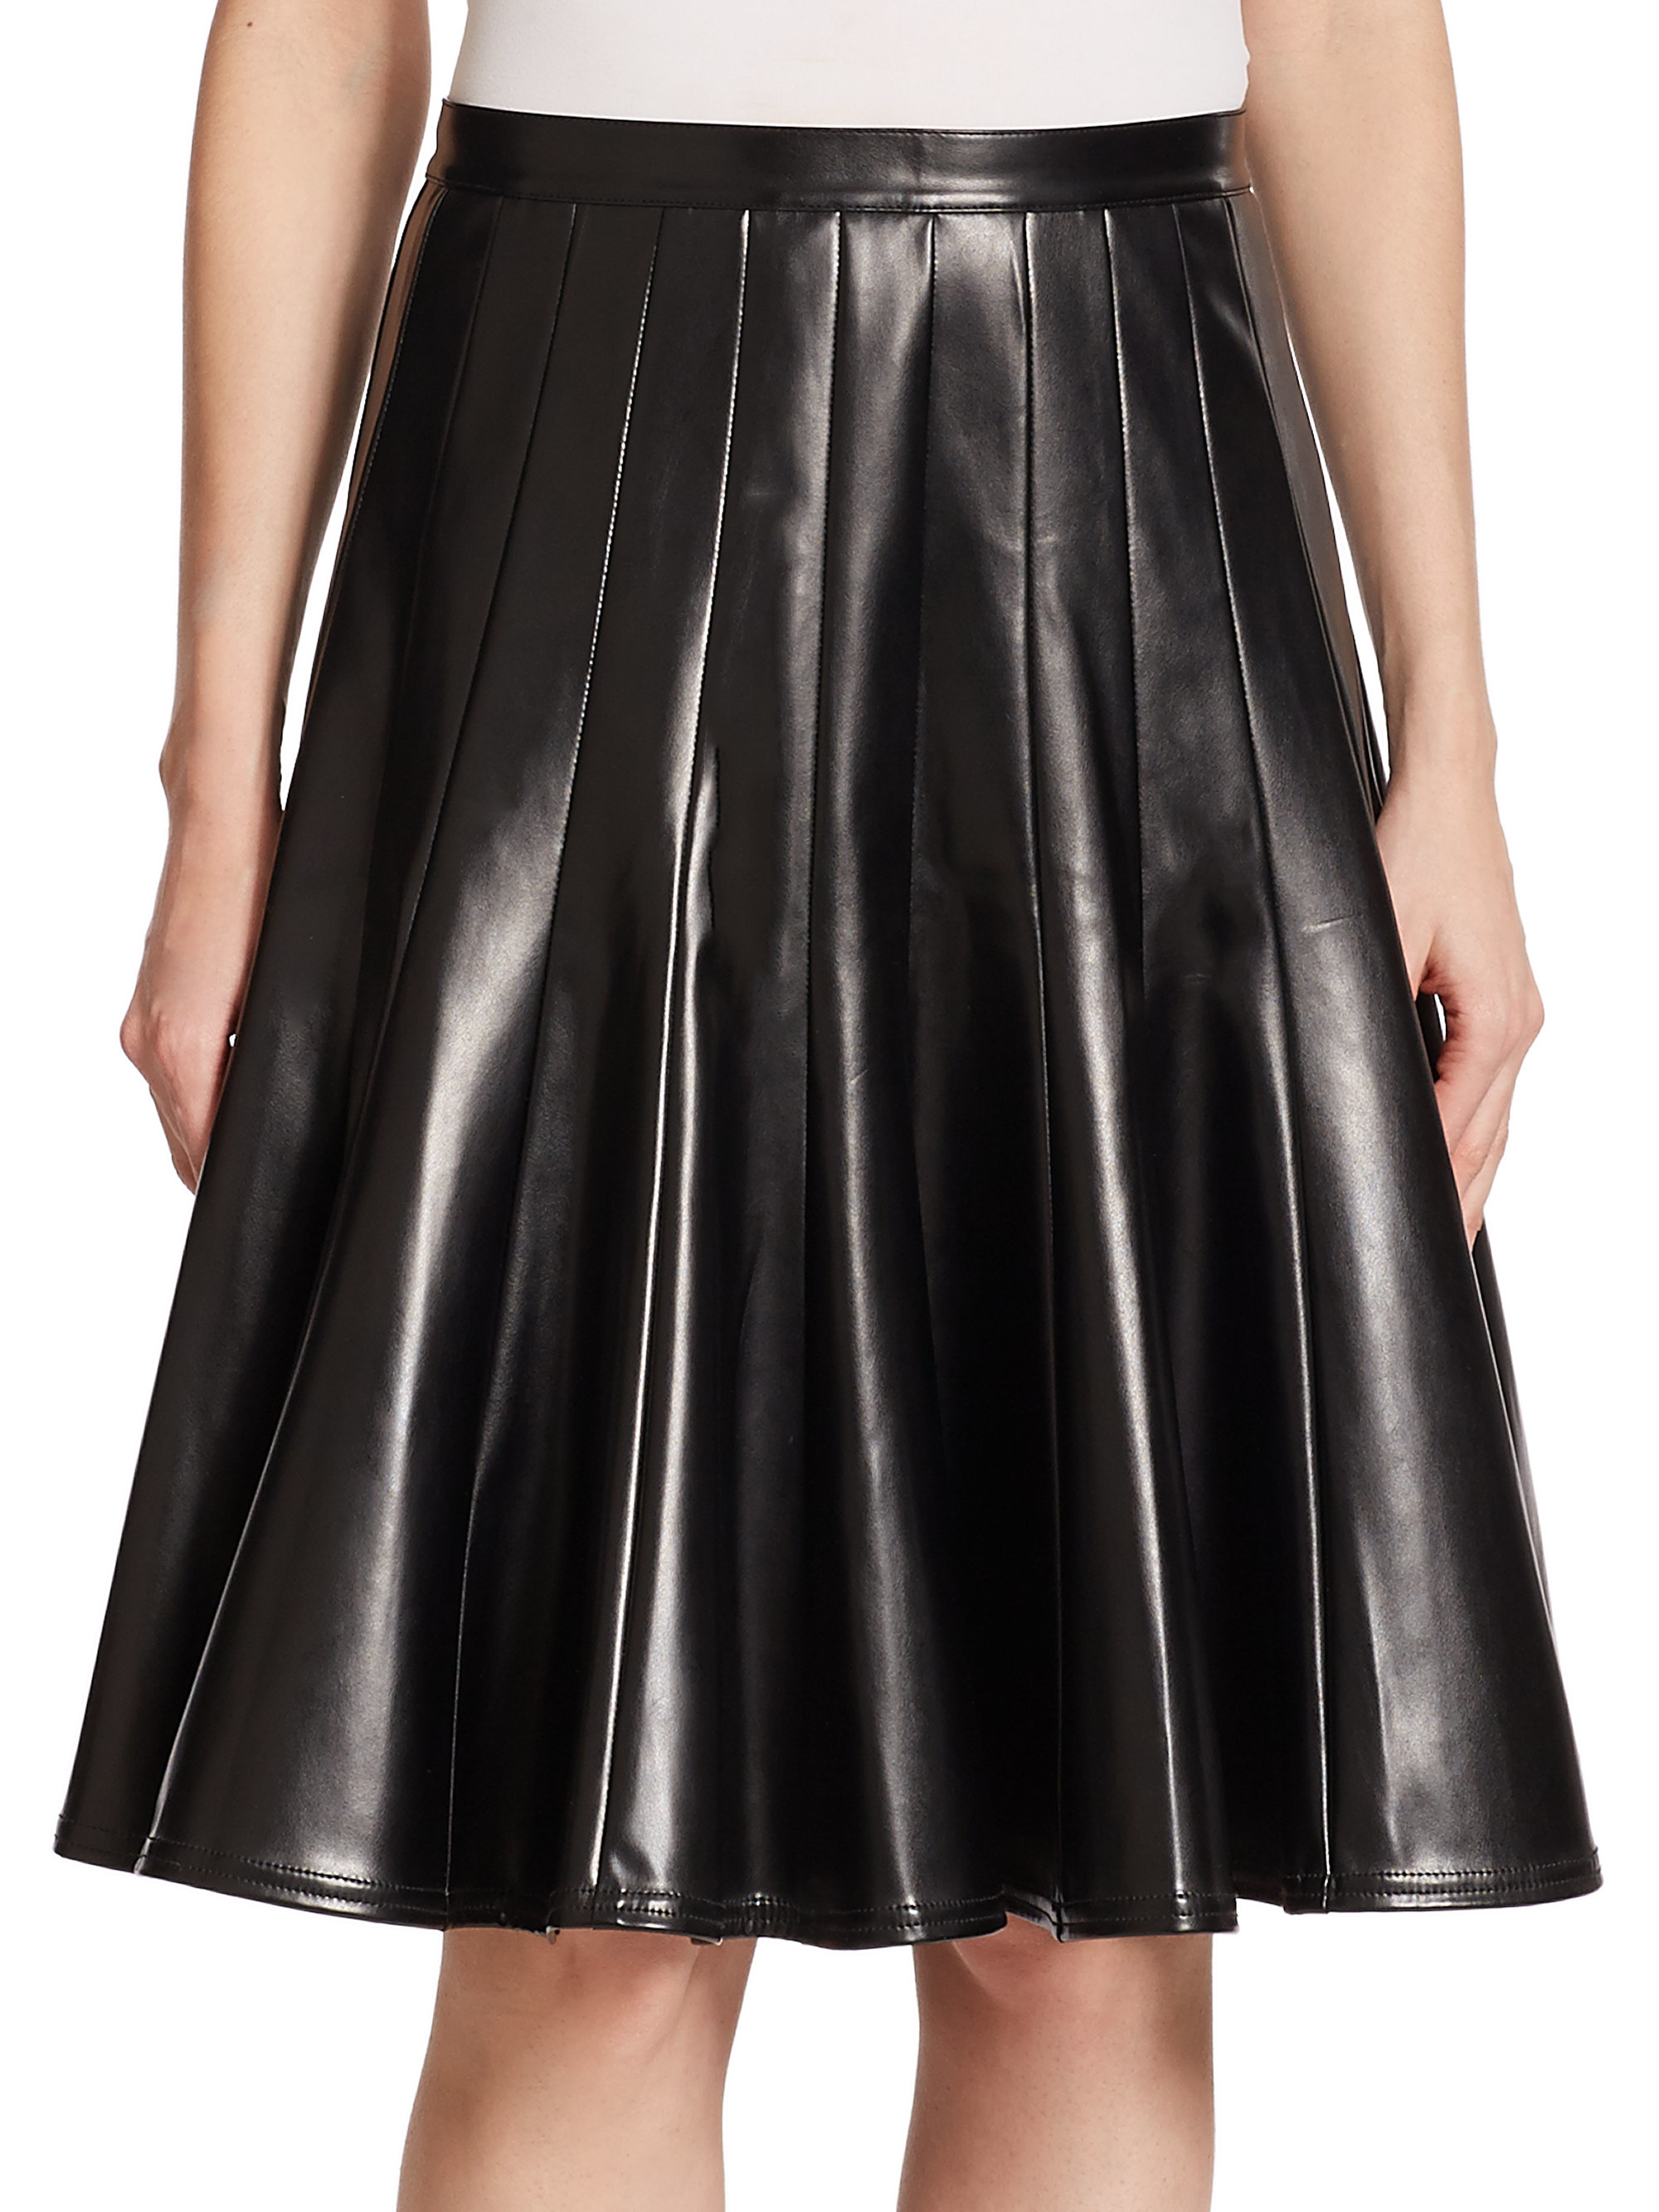 matches. ($ - $) Find great deals on the latest styles of Faux leather pleated skirt. Compare prices & save money on Women's Skirts.